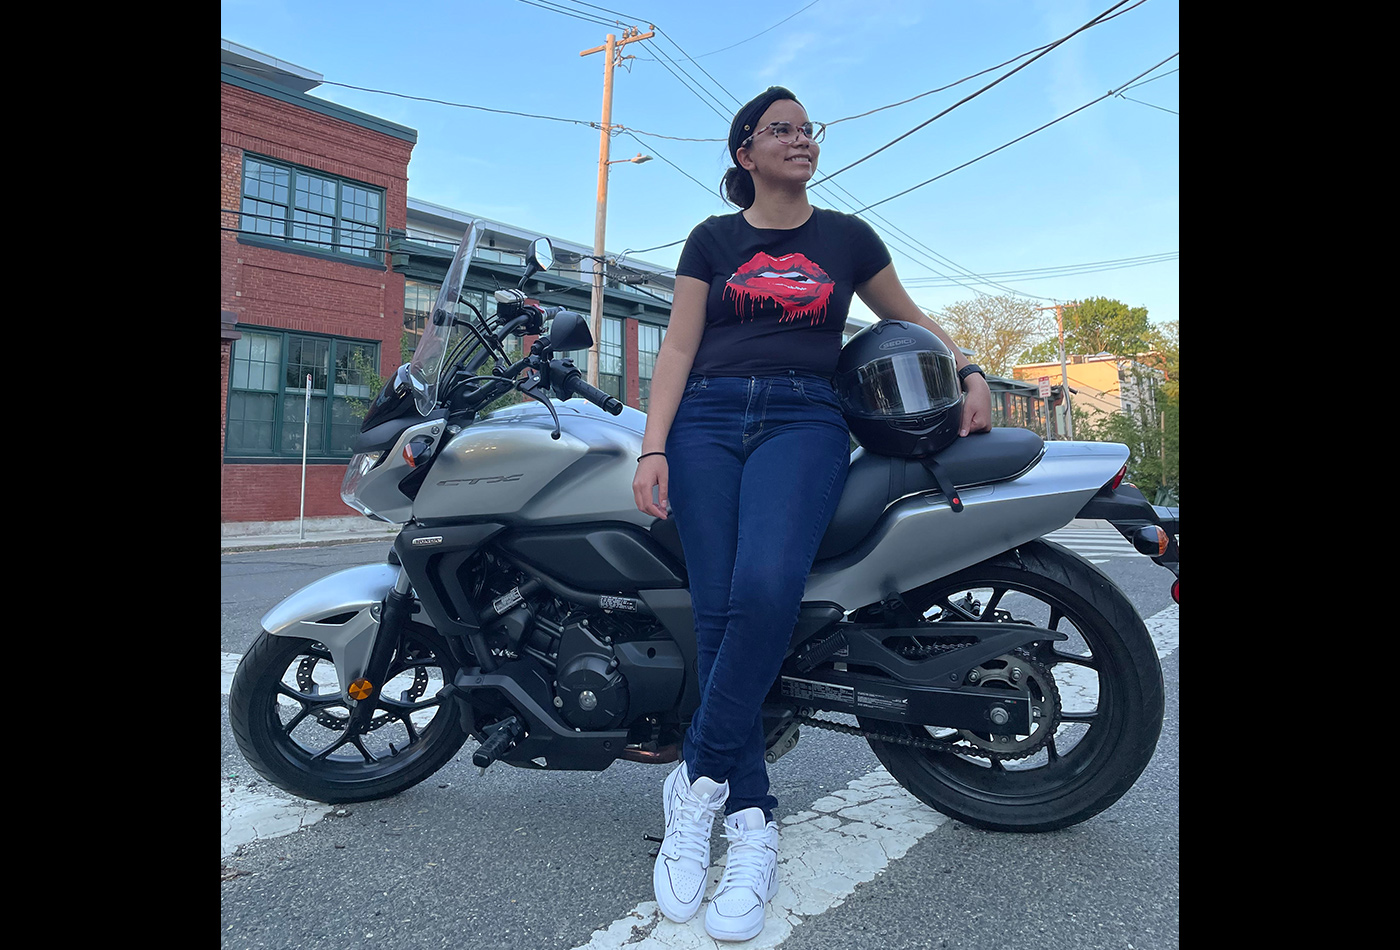 A female graduate student poses with her motorcycle.